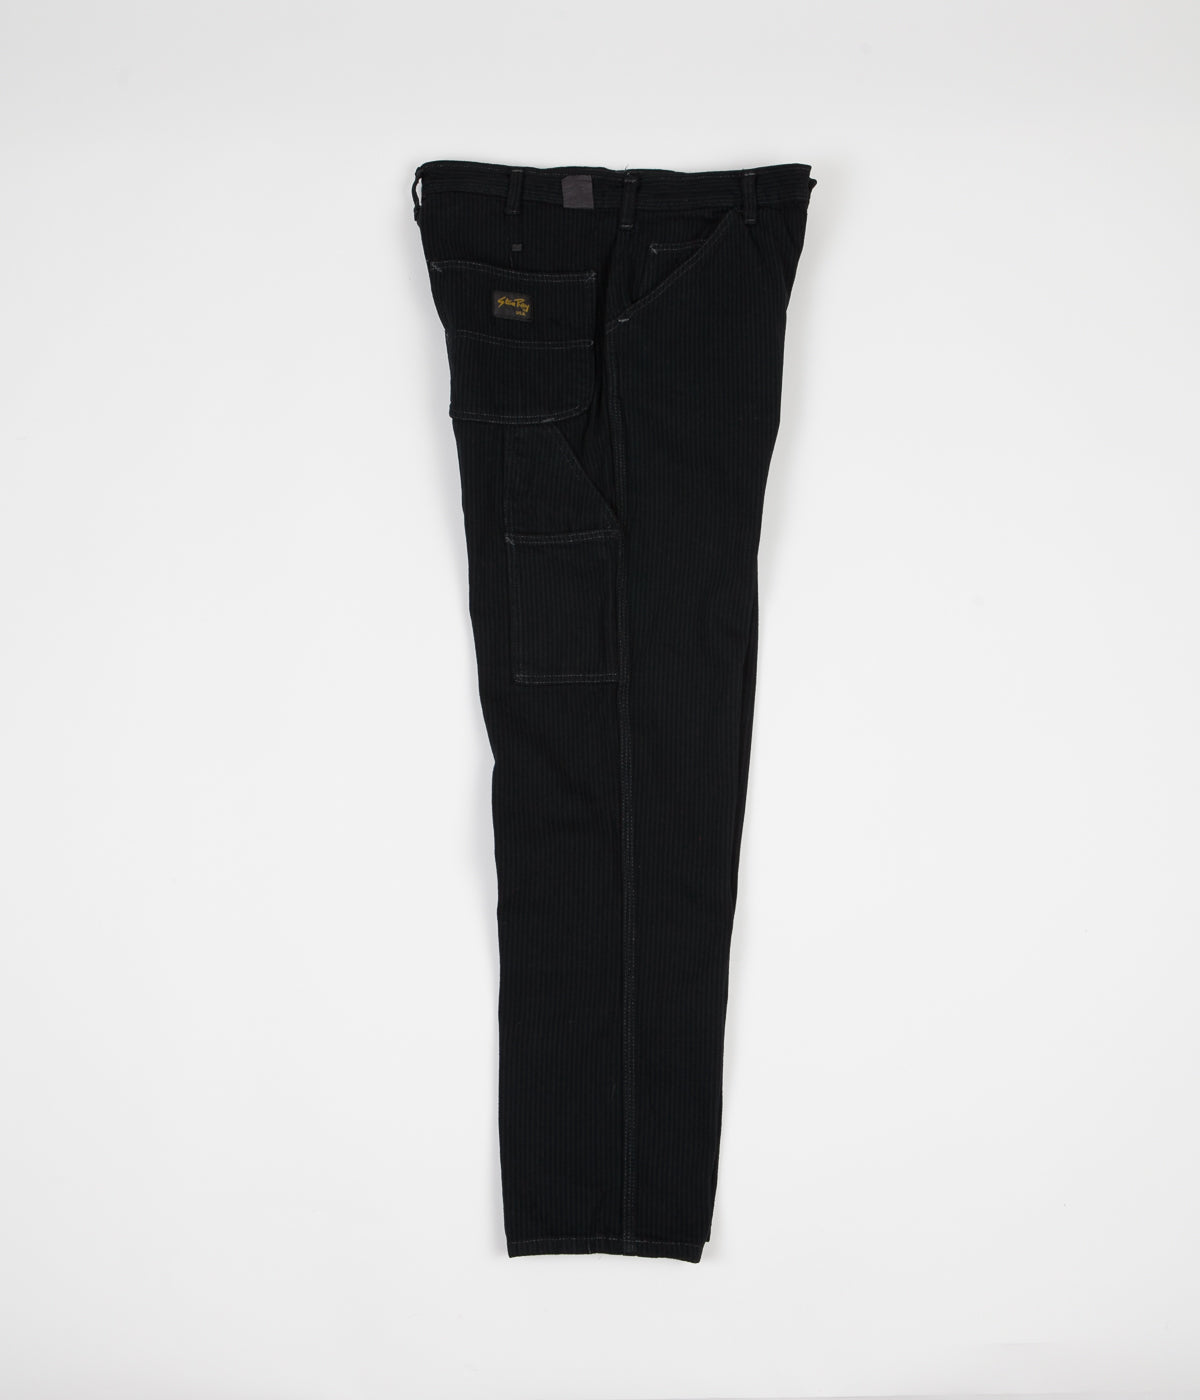 Stan Ray Single Knee Painter Pant Trousers - Black OD Hickory